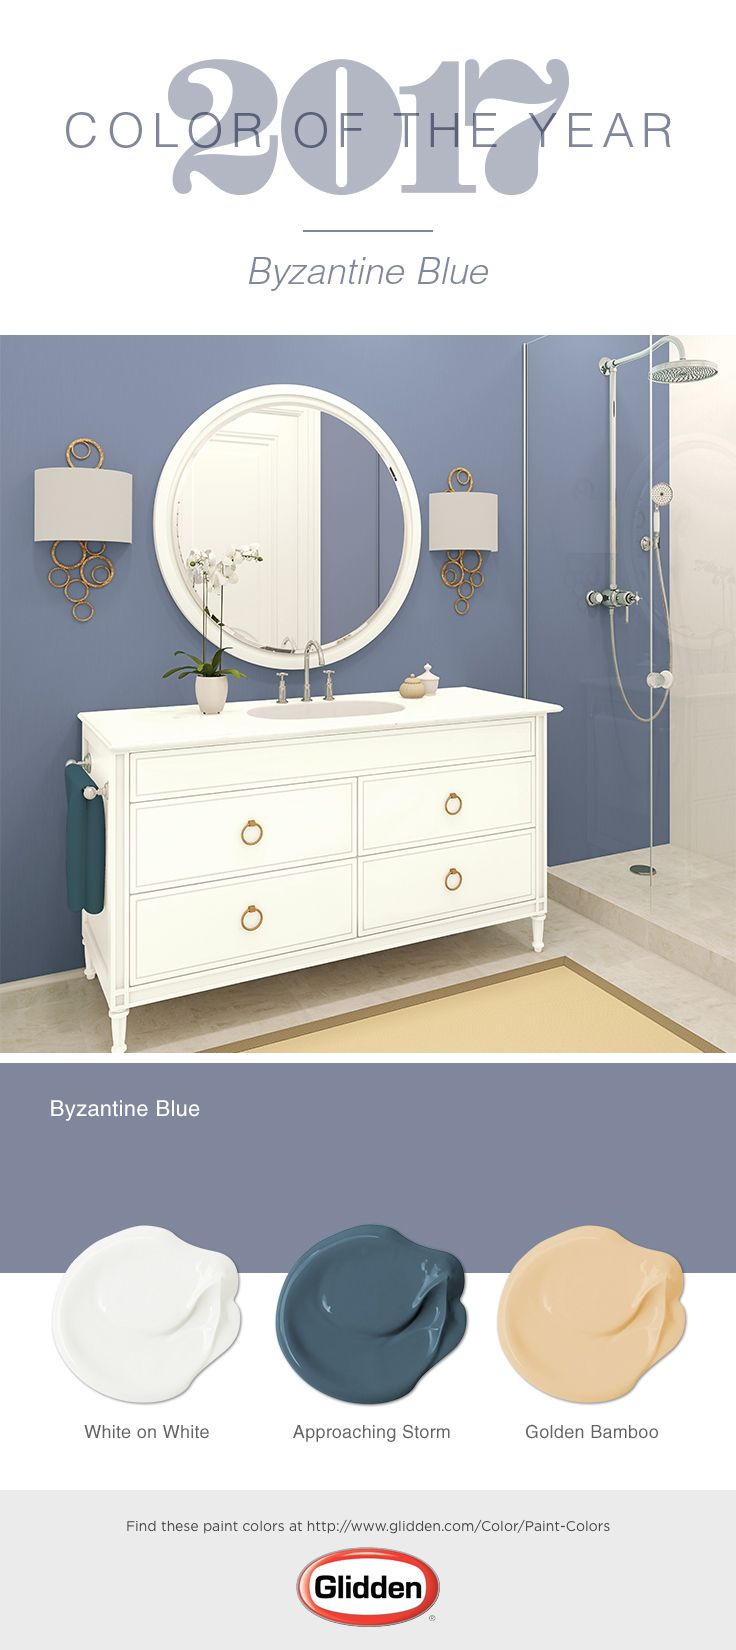 Byzantine Blue, The Glidden® 2017 Color Of The Year, Is Elegant Enough For